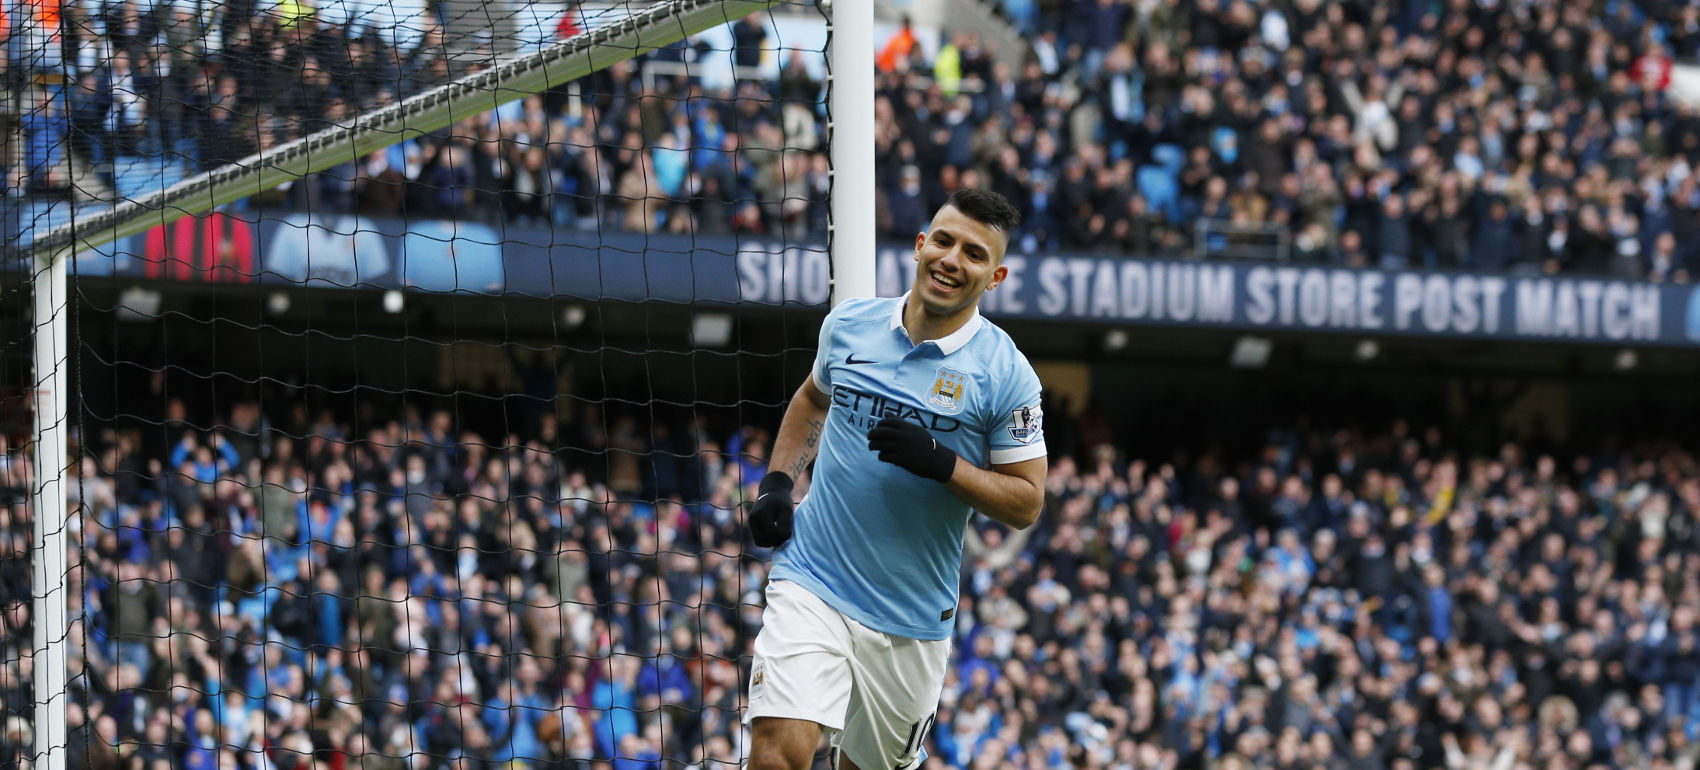 → Sergio Agüero's biggest-ever single-Gameweek haul came in a home match against Newcastle United in 2015/16. How many FPL points did he rack up in this fixture?